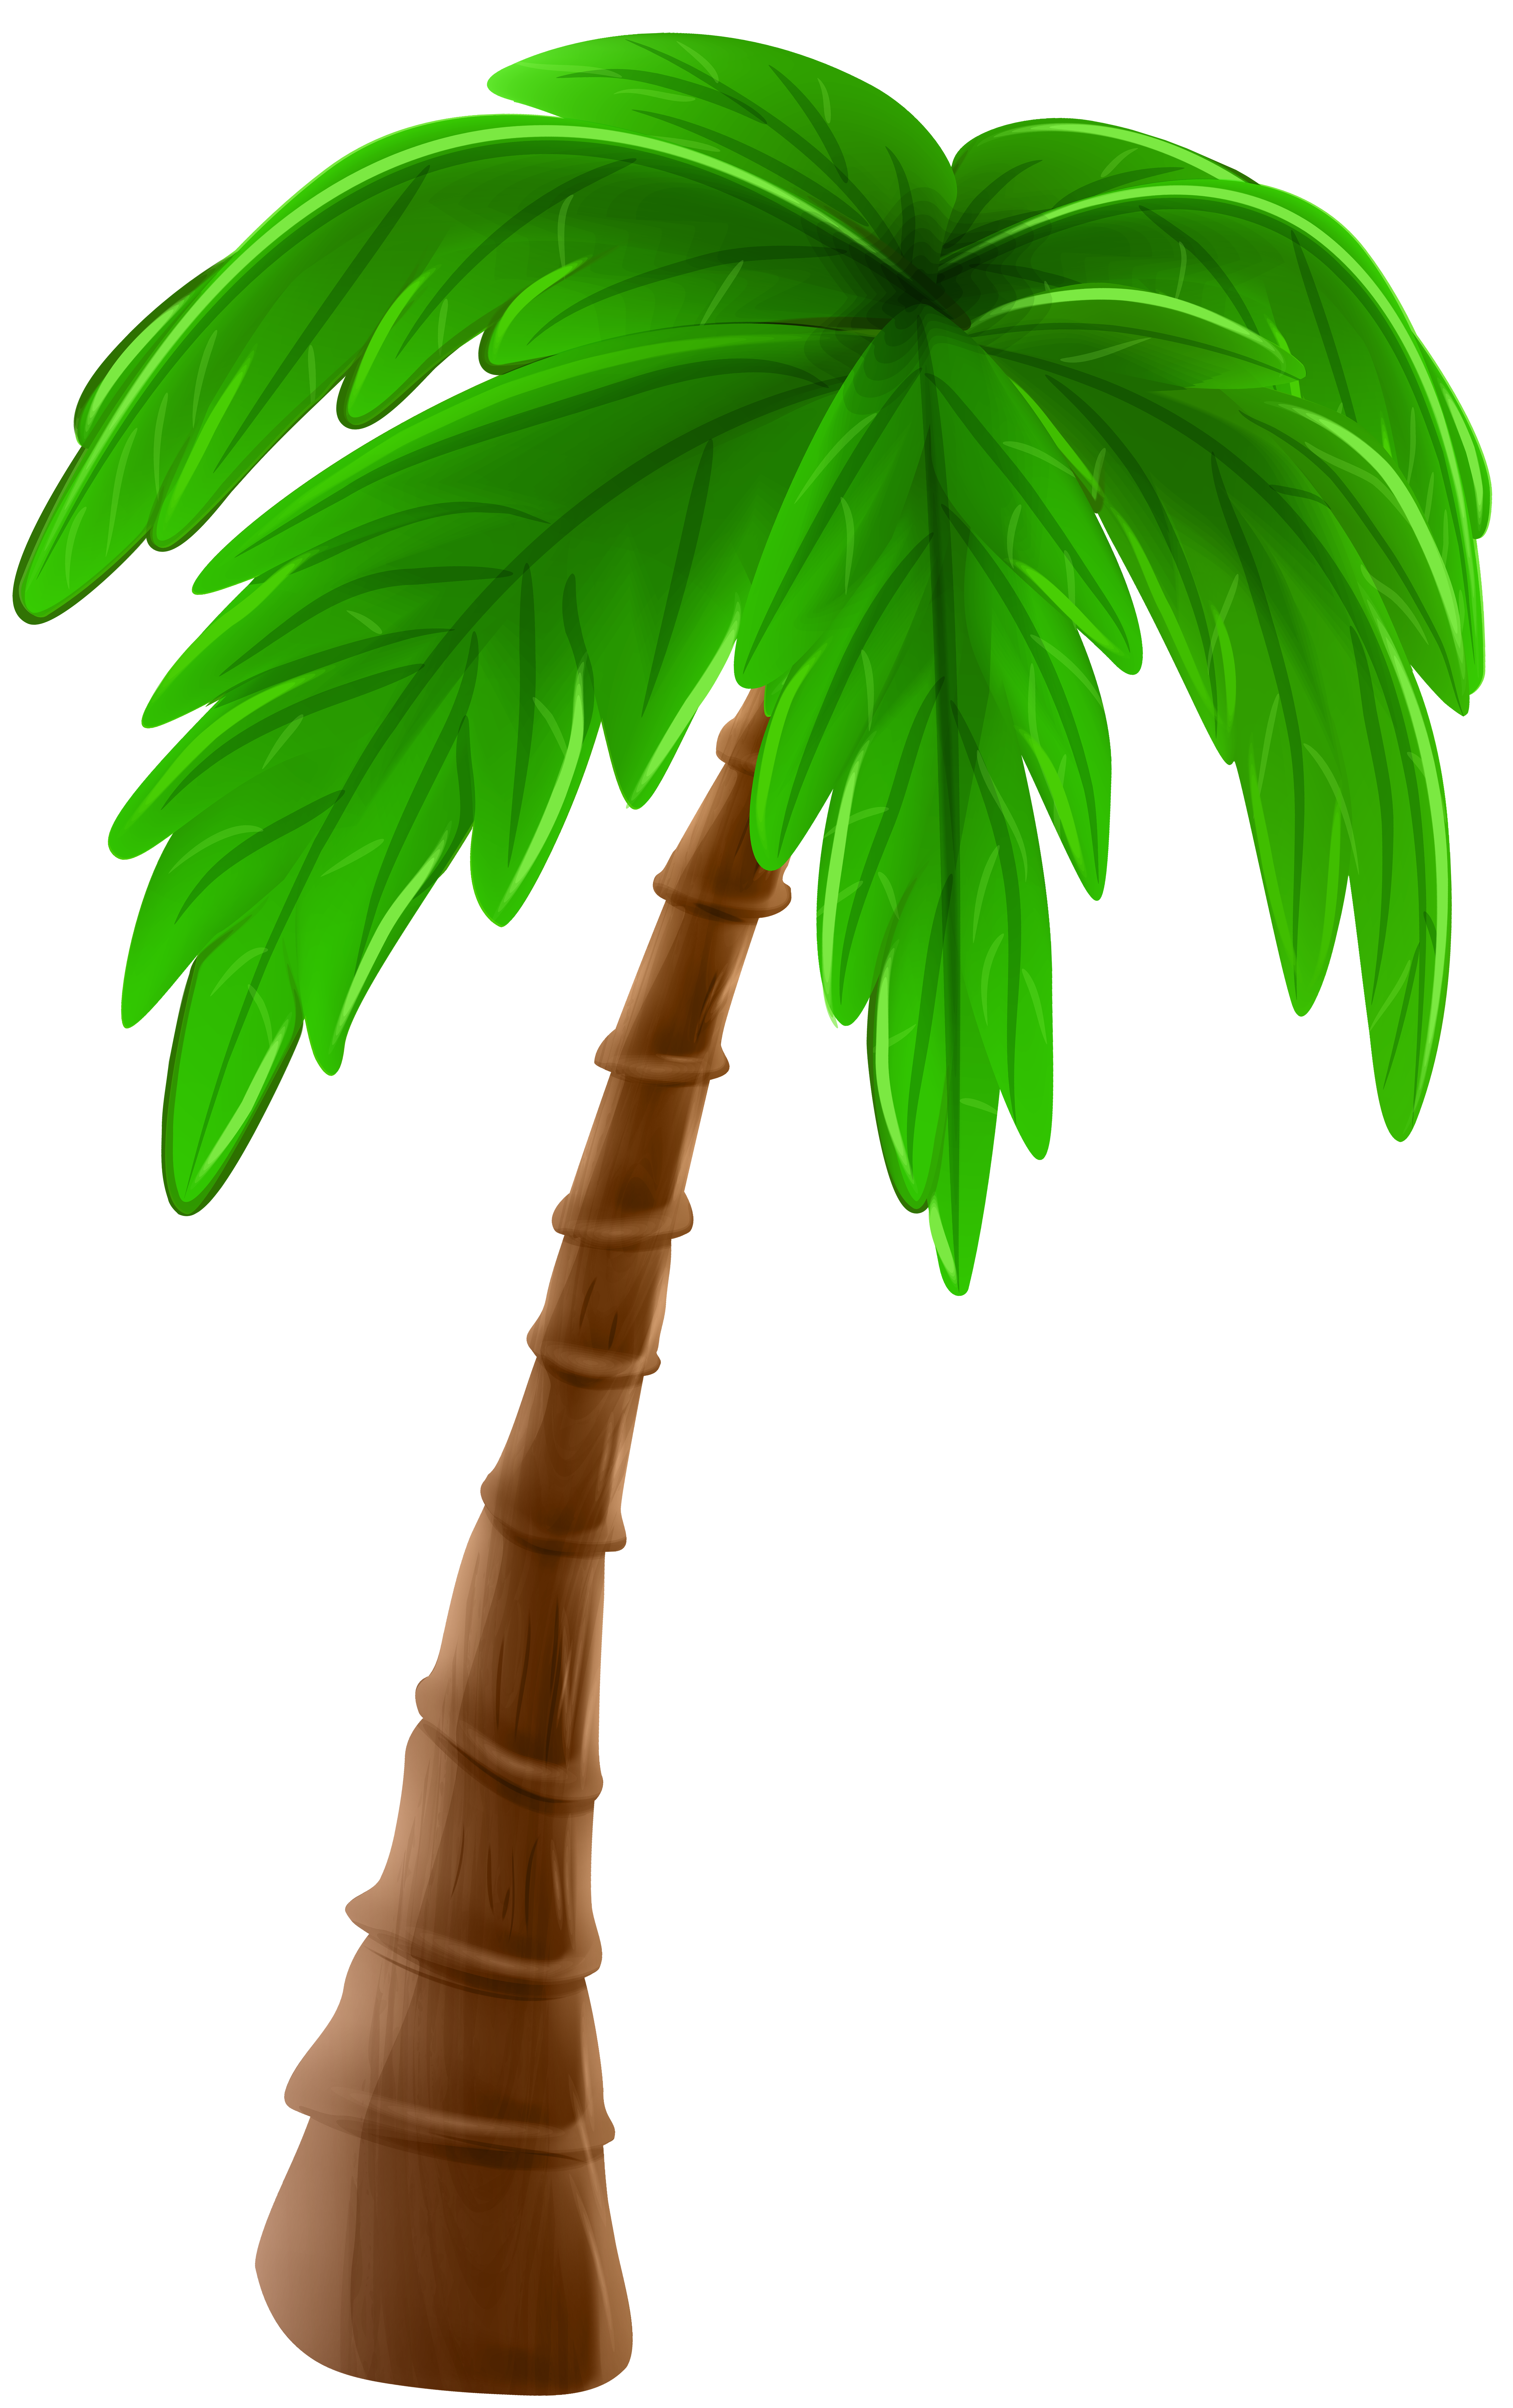 Tree cartoon clipart image library download Palm Tree Cartoon PNG Clip Art Image | Gallery Yopriceville - High ... image library download